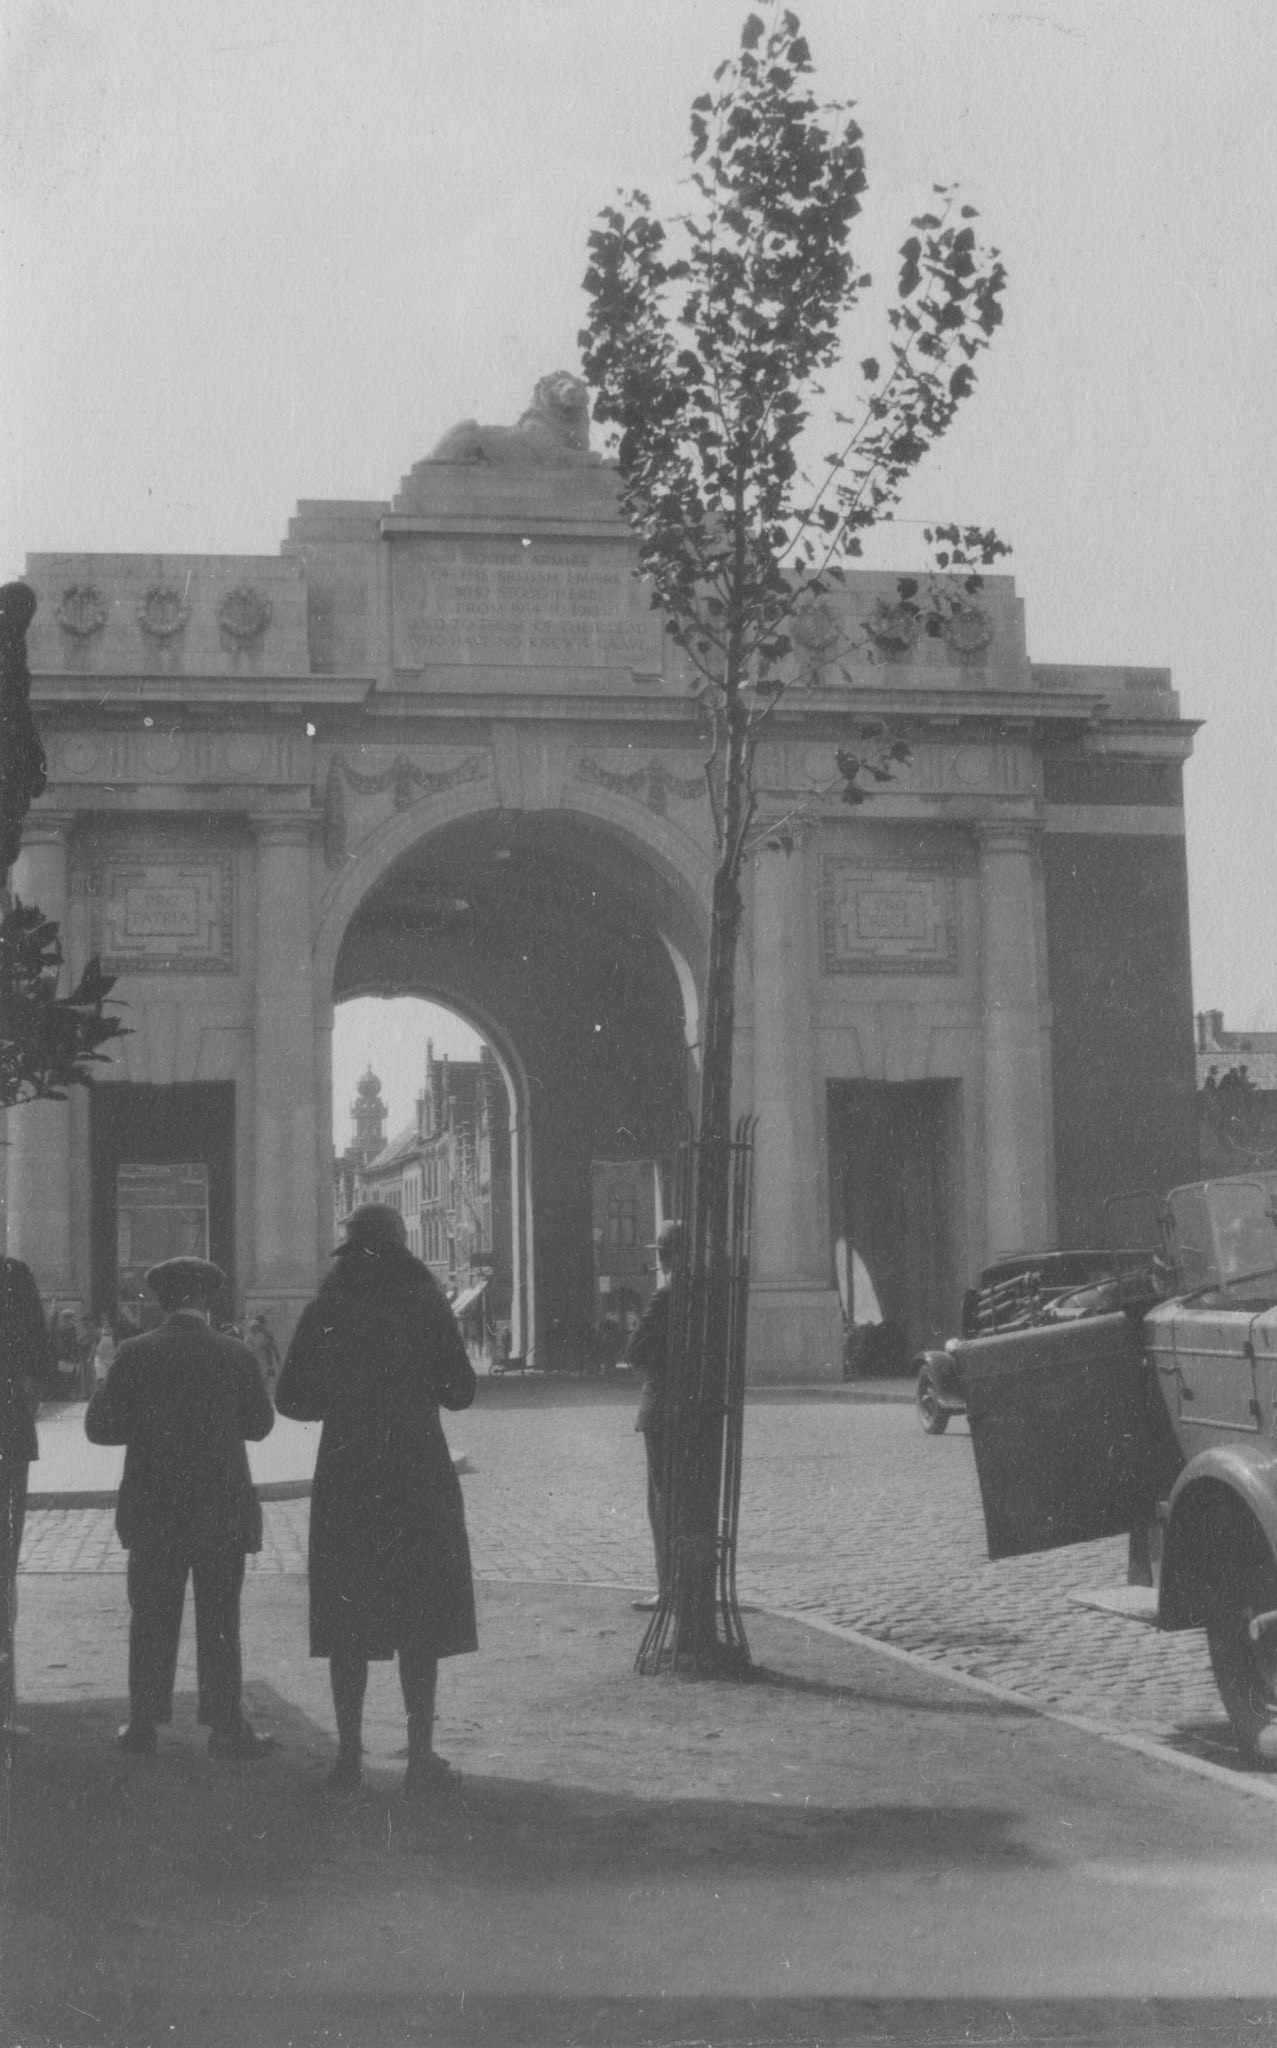 """#OTD in 1927, the Menin Gate Memorial in Ypres was unveiled by Lord Plumer. To the assembled crowd he said """"He is not missing, he is here."""" It's a memorial that has inspired so many and continues to inspire students on @HoltsTours Battlefield Tours. https://t.co/8hKkprSHvh"""